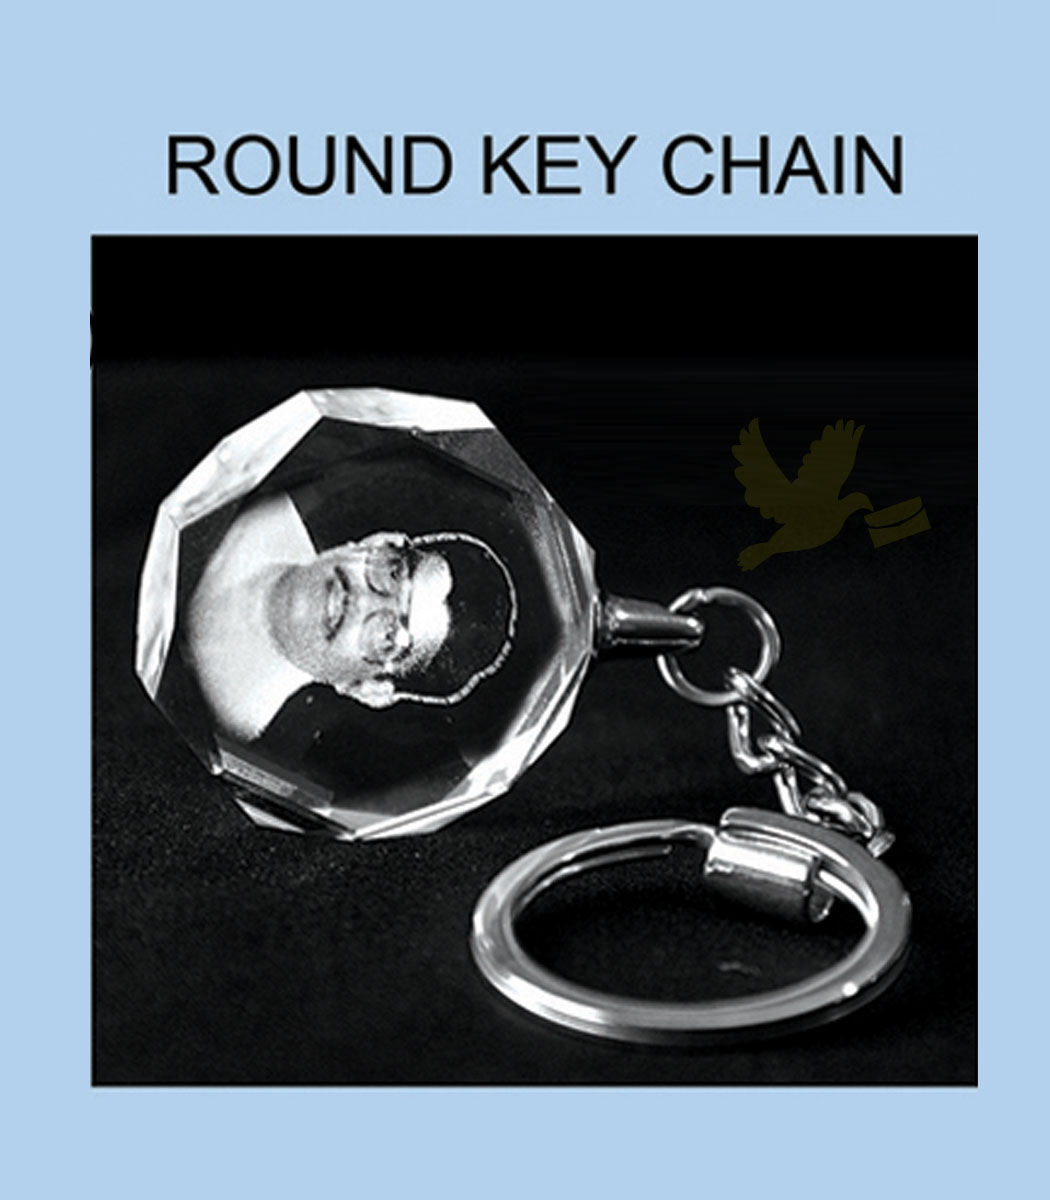 2d-crystal key chain round